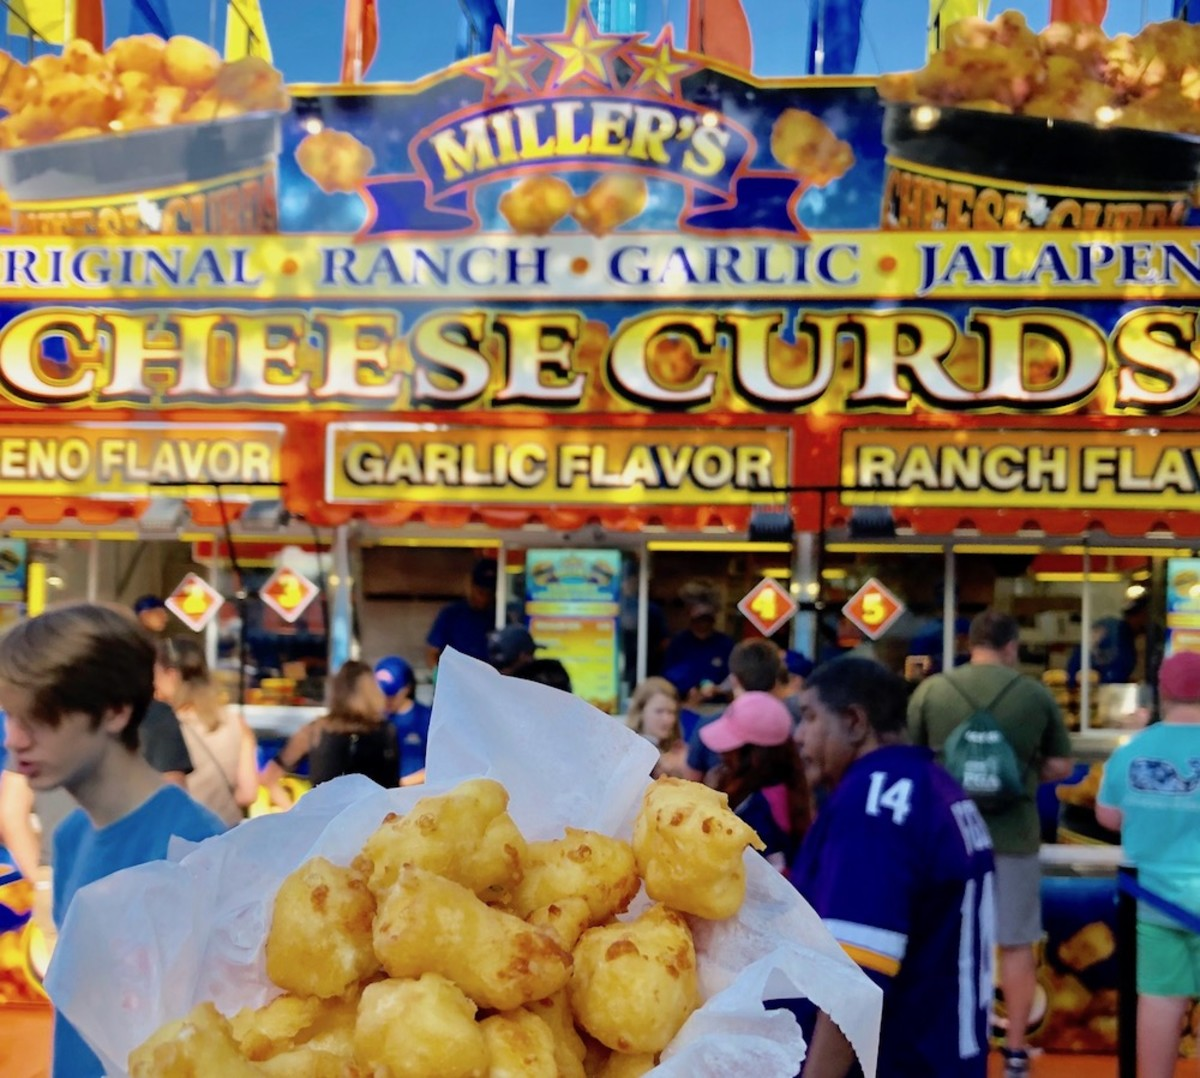 Millers cheese curds